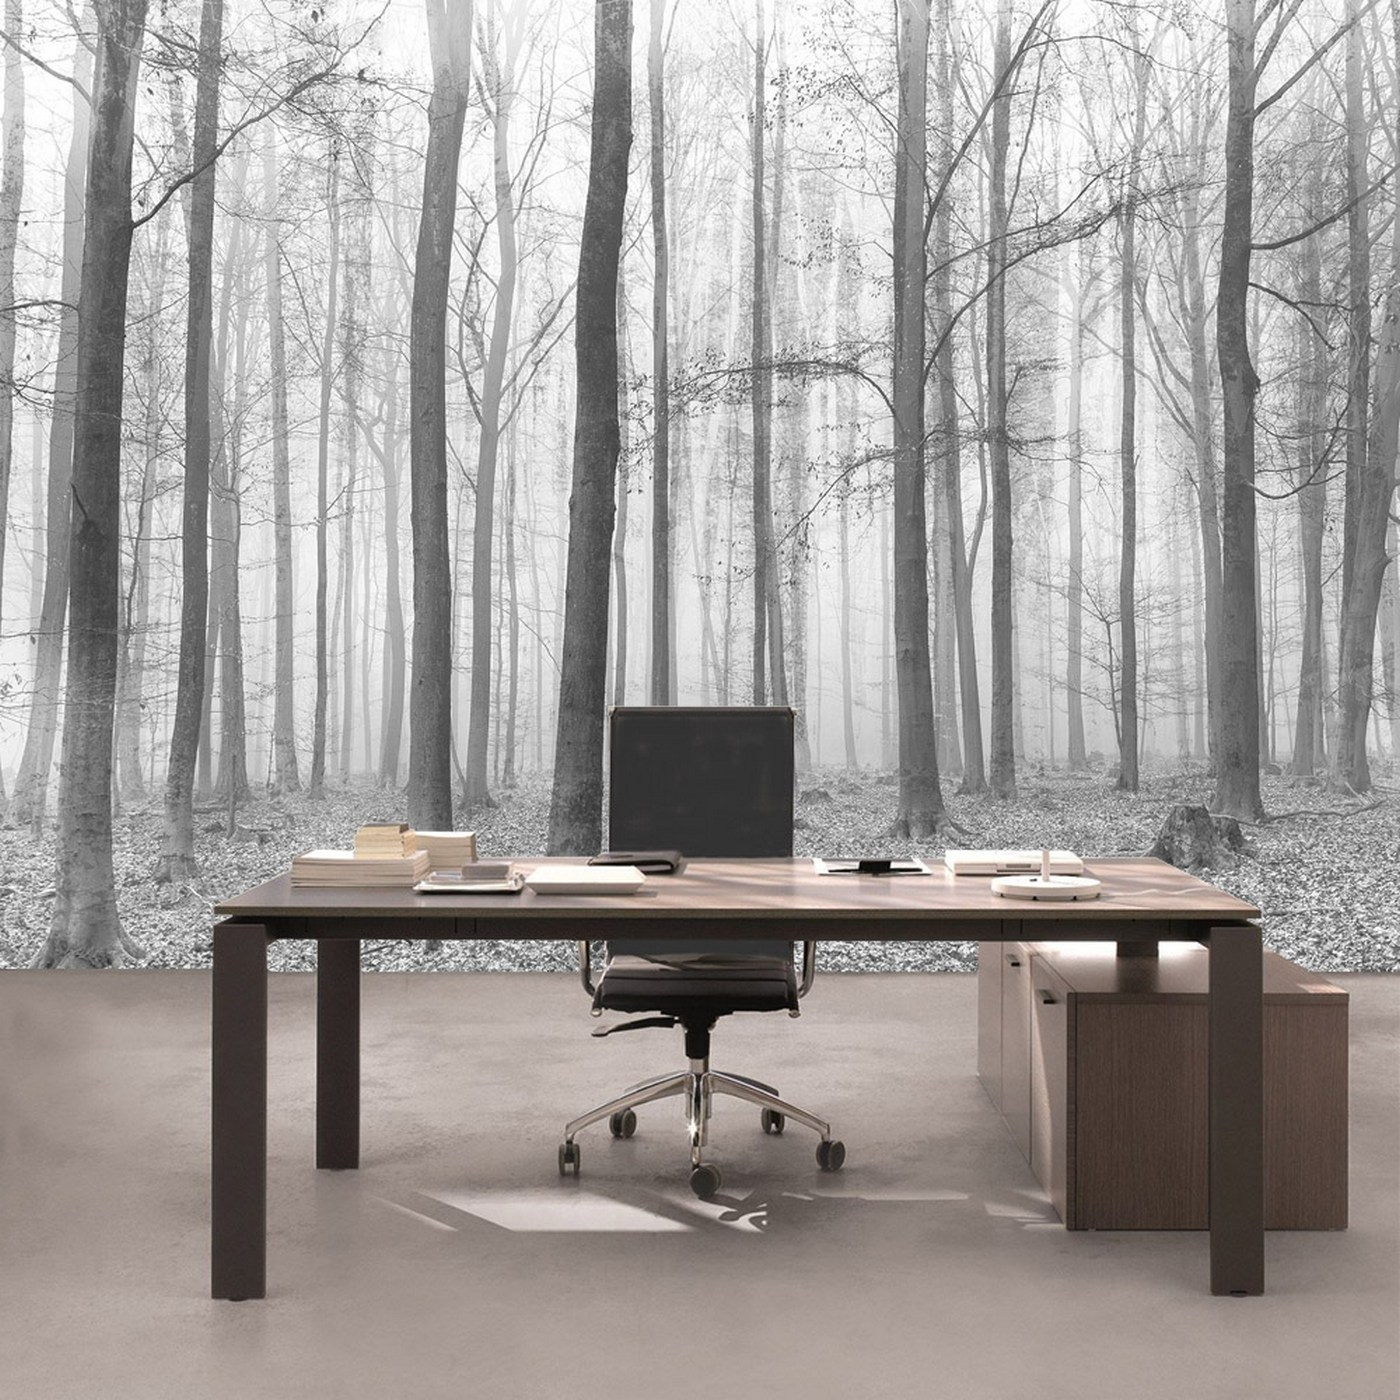 kiss fototapeten zu besten preisen vlies fototapete no 4433 natur tapete wald baum nebel. Black Bedroom Furniture Sets. Home Design Ideas